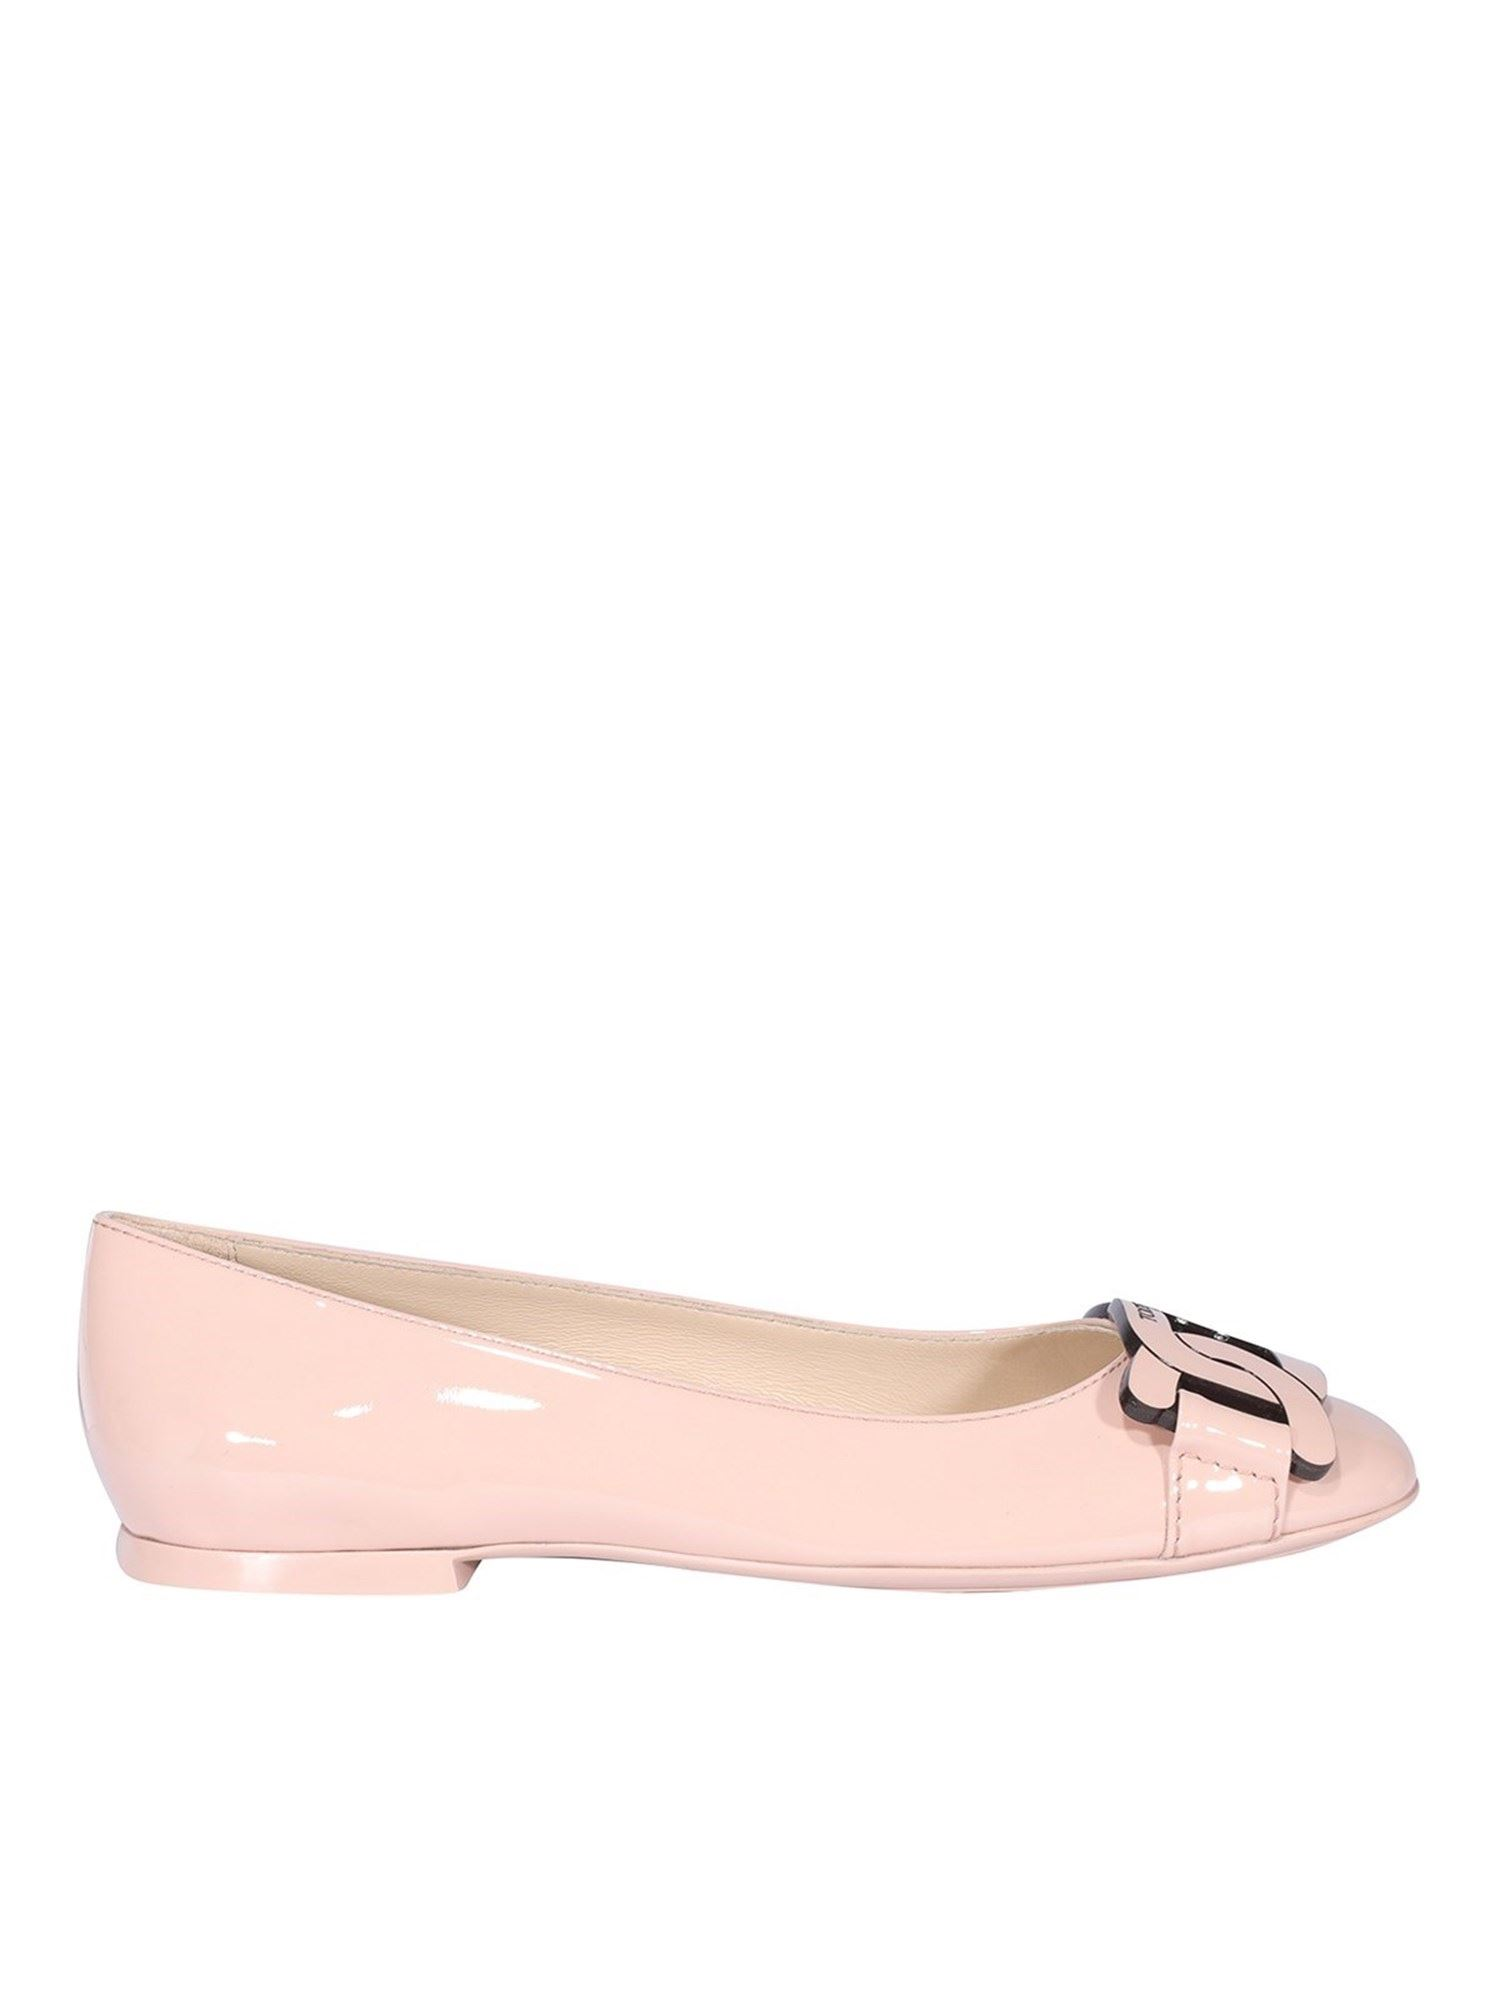 Tod's CHAIN TRIM PATENT LEATHER FLATS IN PINK